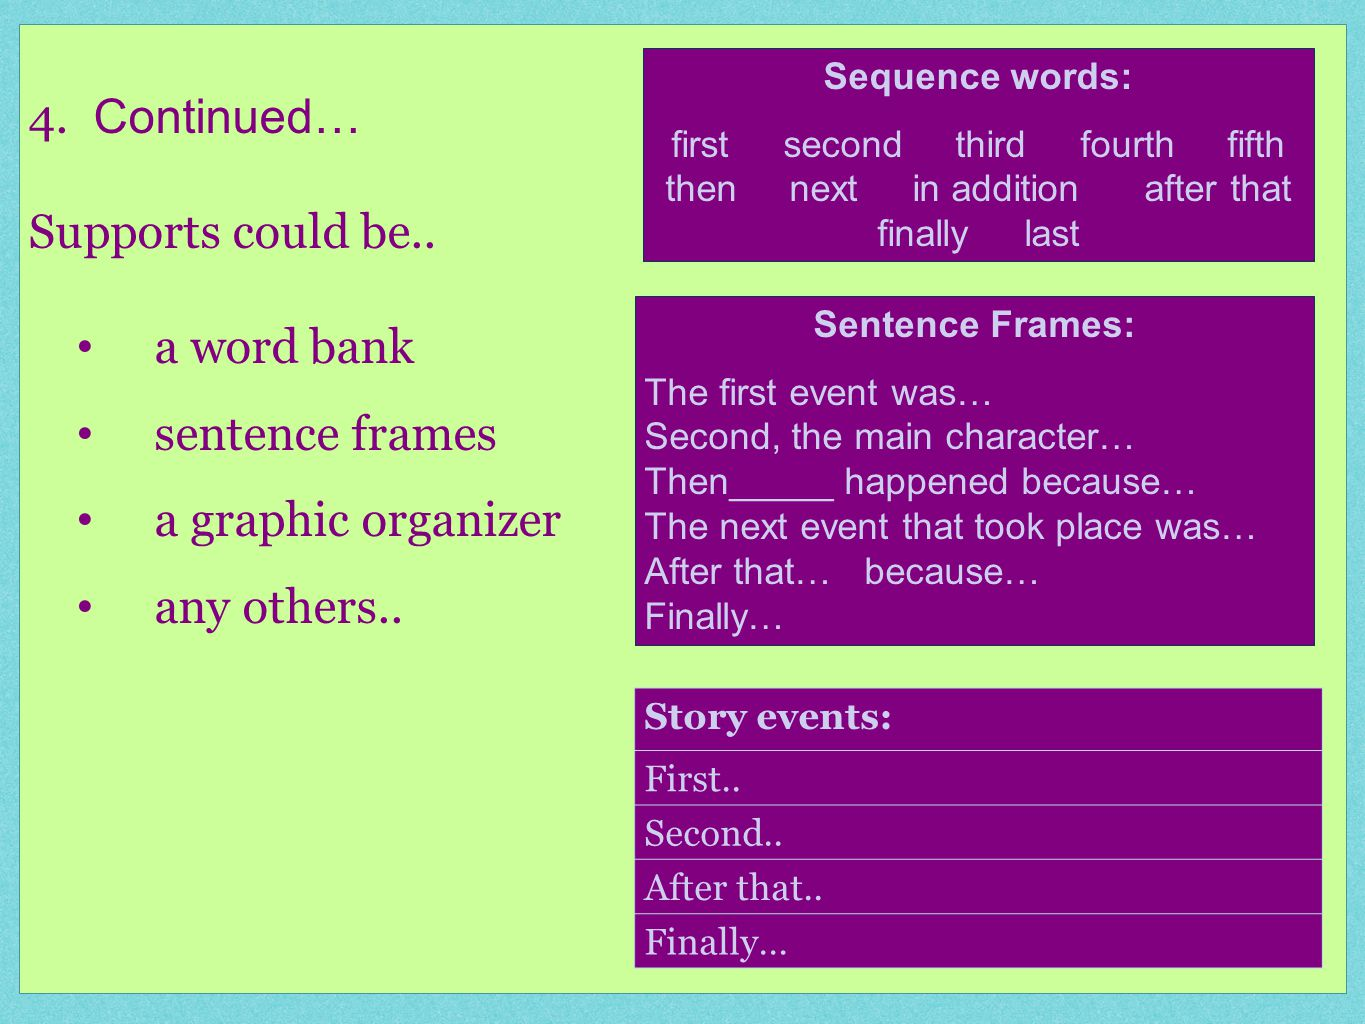 4. Continued… Supports could be.. a word bank sentence frames a graphic organizer any others..